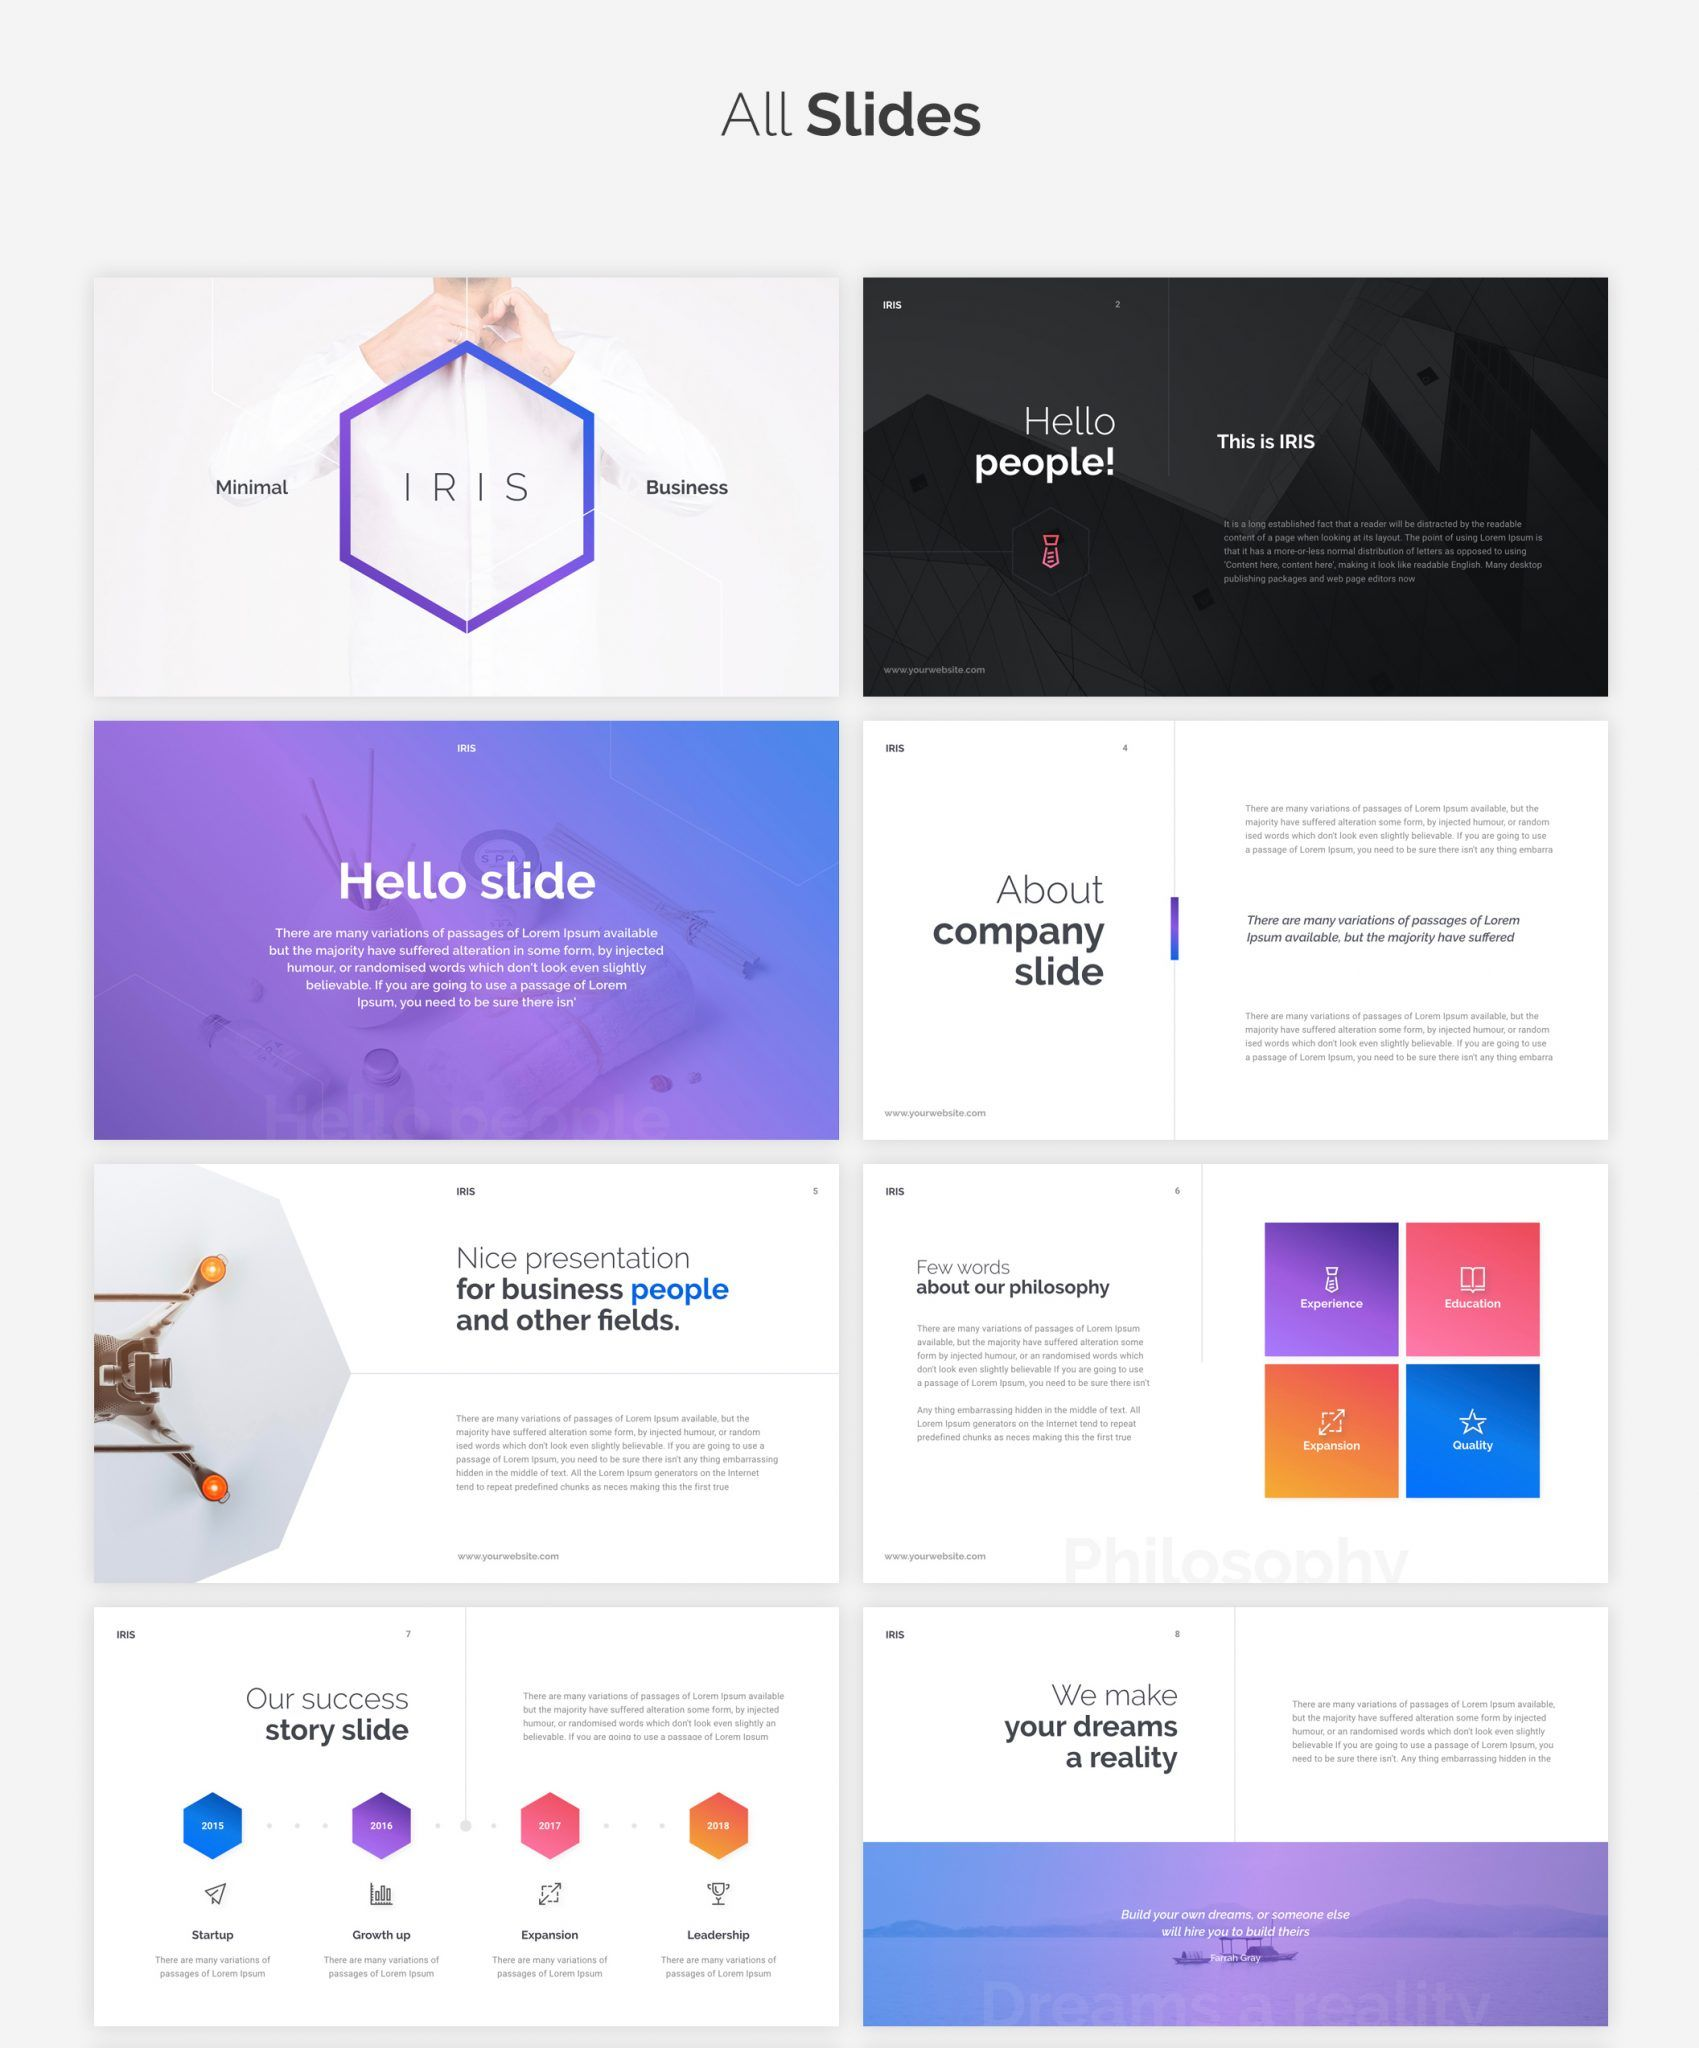 Free cool powerpoint templates presentatie inspiratie pinterest cool powerpoint templates for fun simple and creative presentations the best free powerpoint designs to create awesome pitch decks and wow the audience toneelgroepblik Choice Image